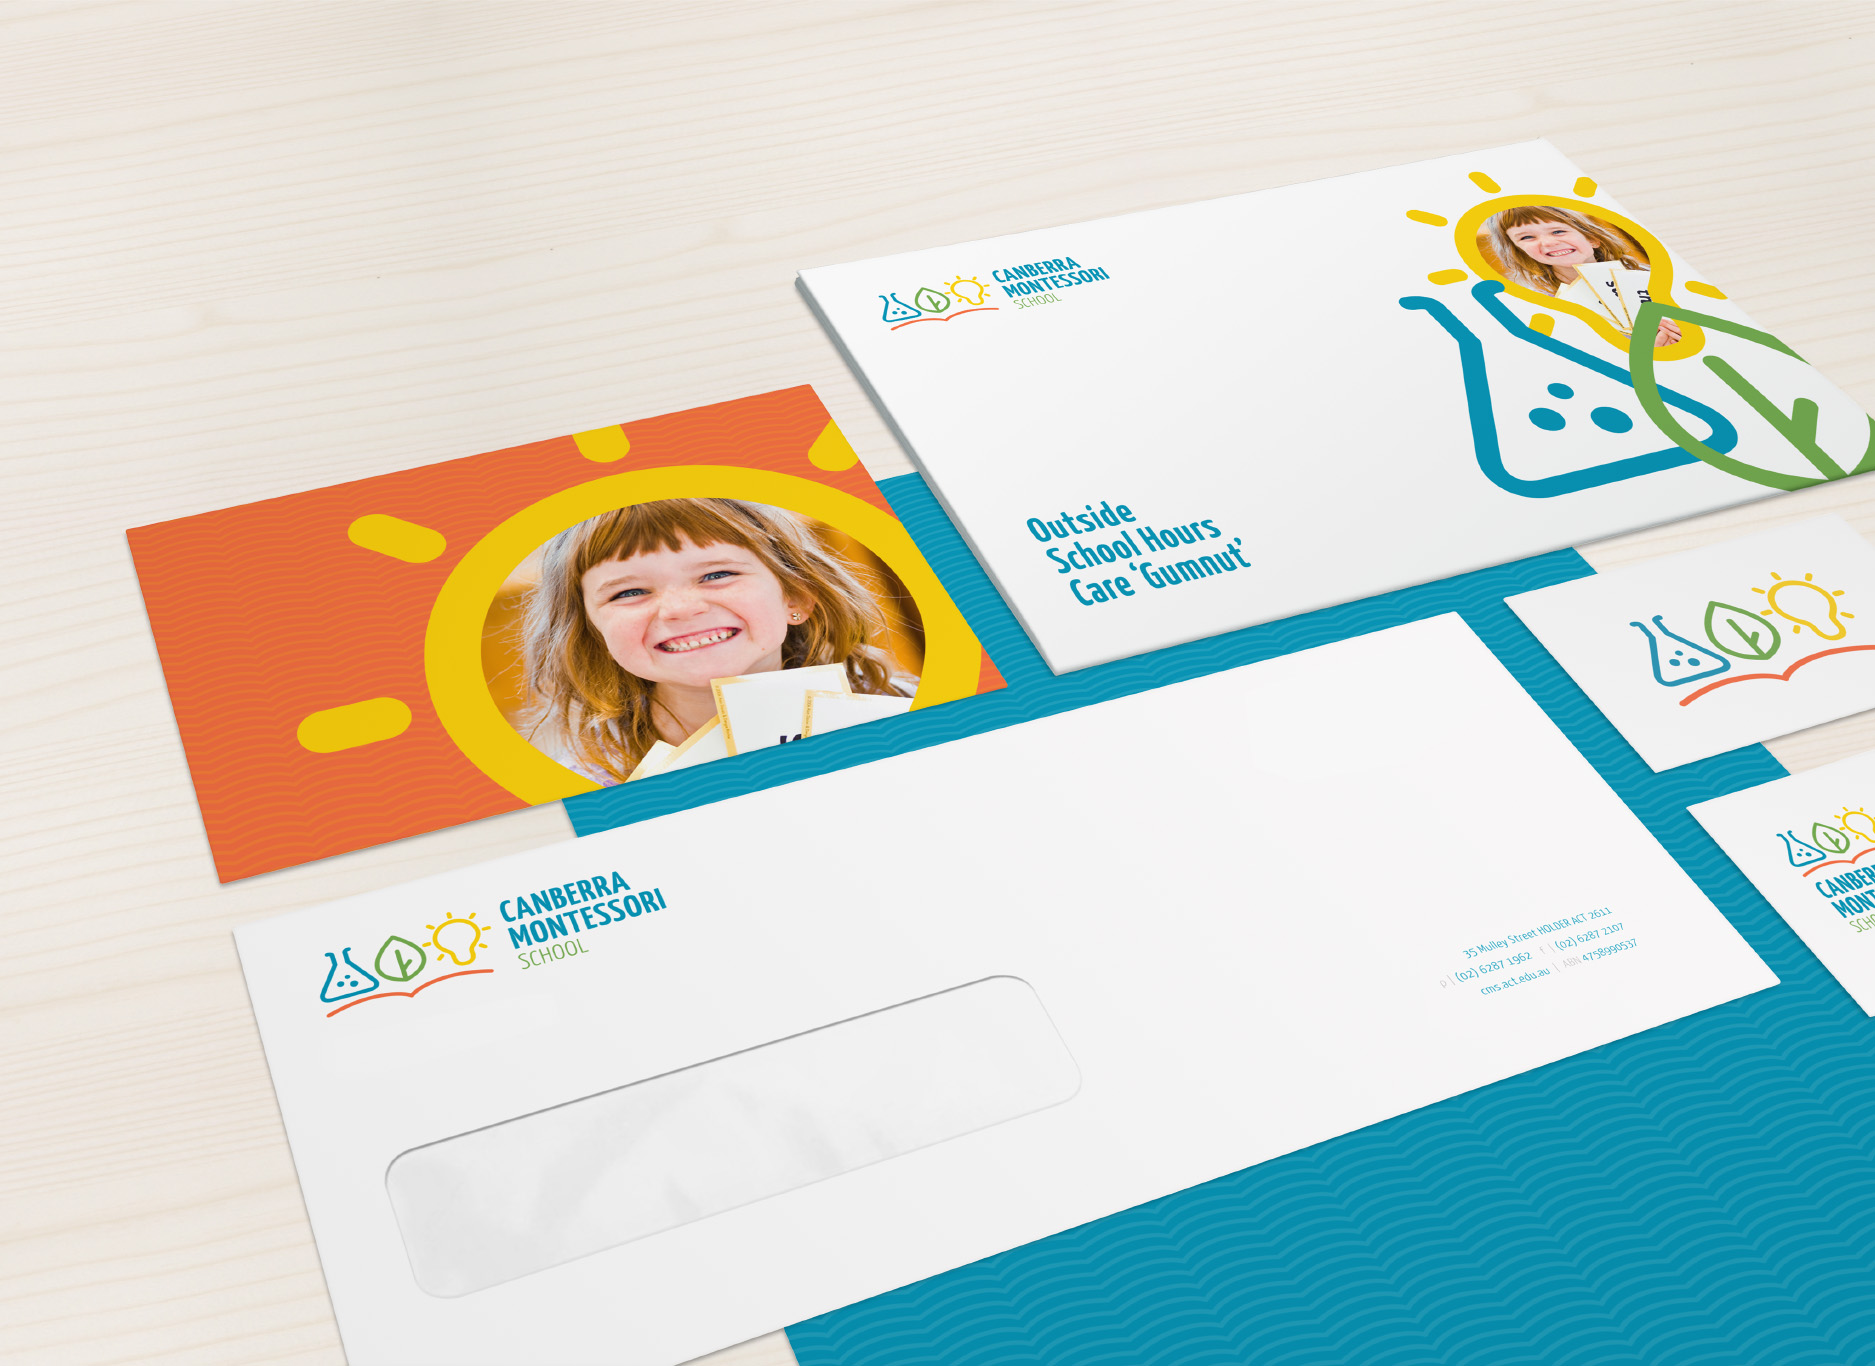 Canberra Montessori School, envelope and business cards, designed by 372 Digital